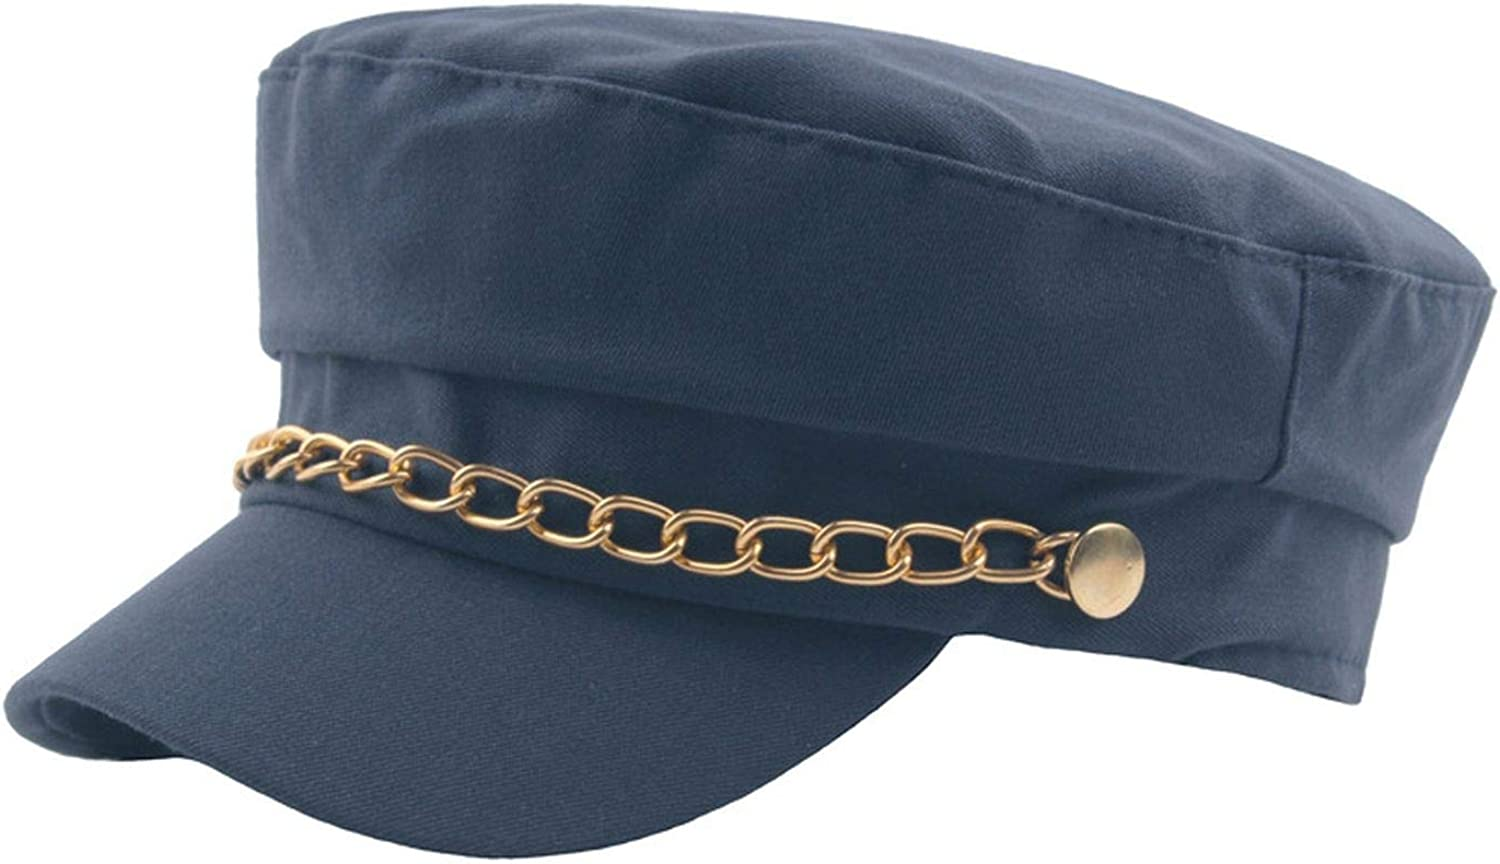 UKURO Army Hat Newsboy Cap...